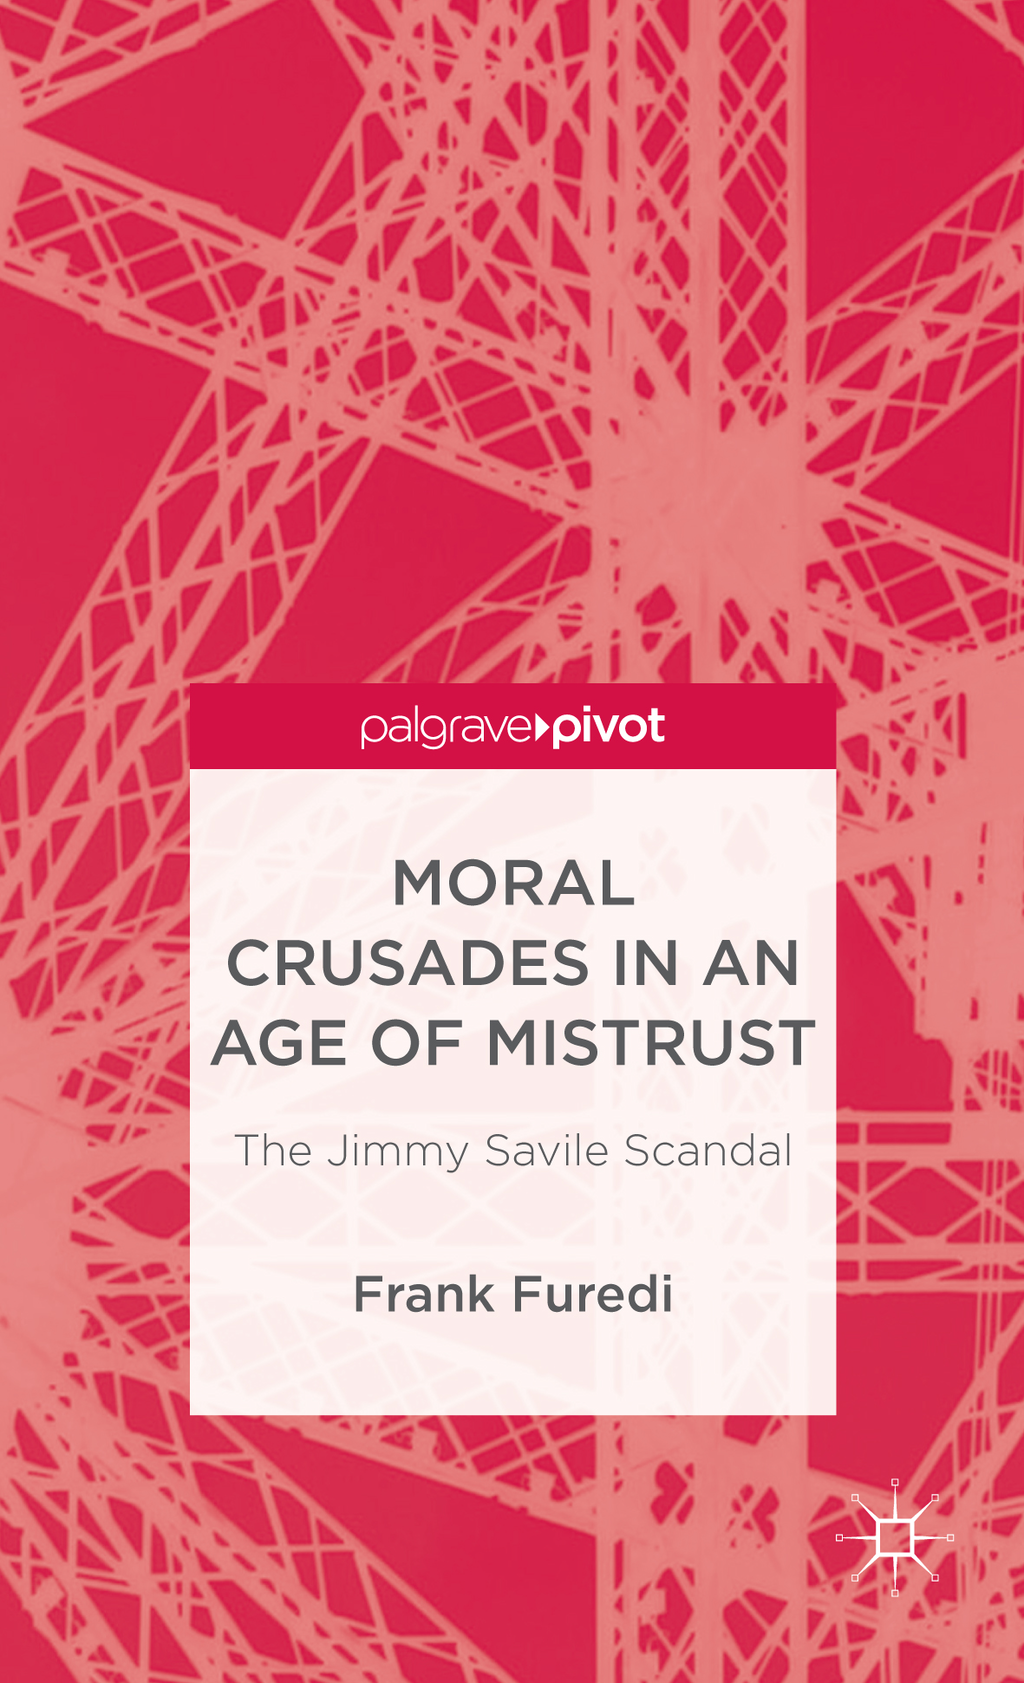 Moral Crusades in an Age of Mistrust The Jimmy Savile Scandal